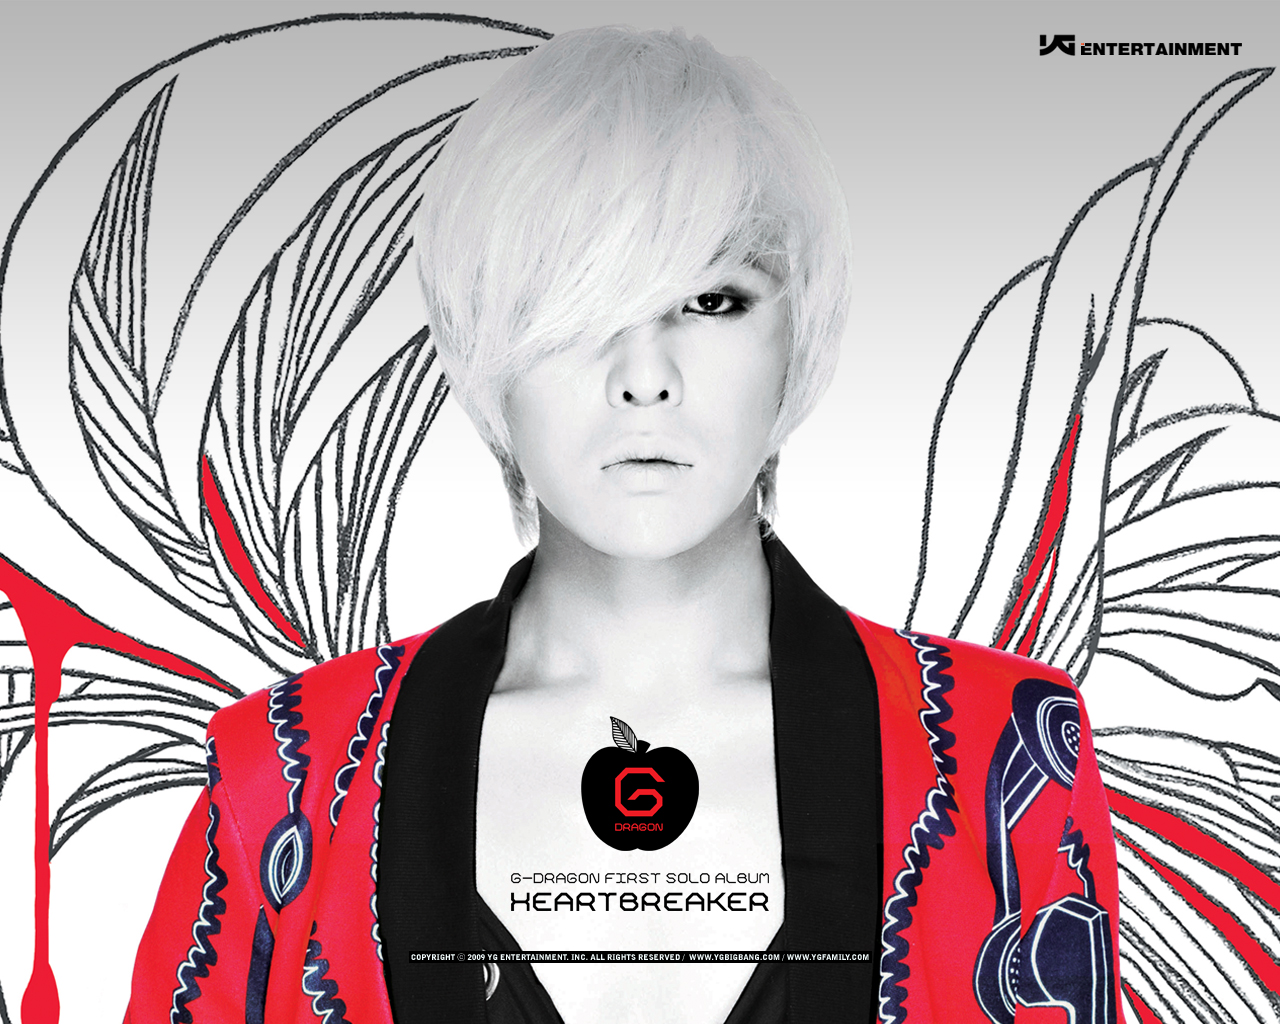 Heartbreaker Wallpaper  GD Wallpaper 31865674  Fanpop